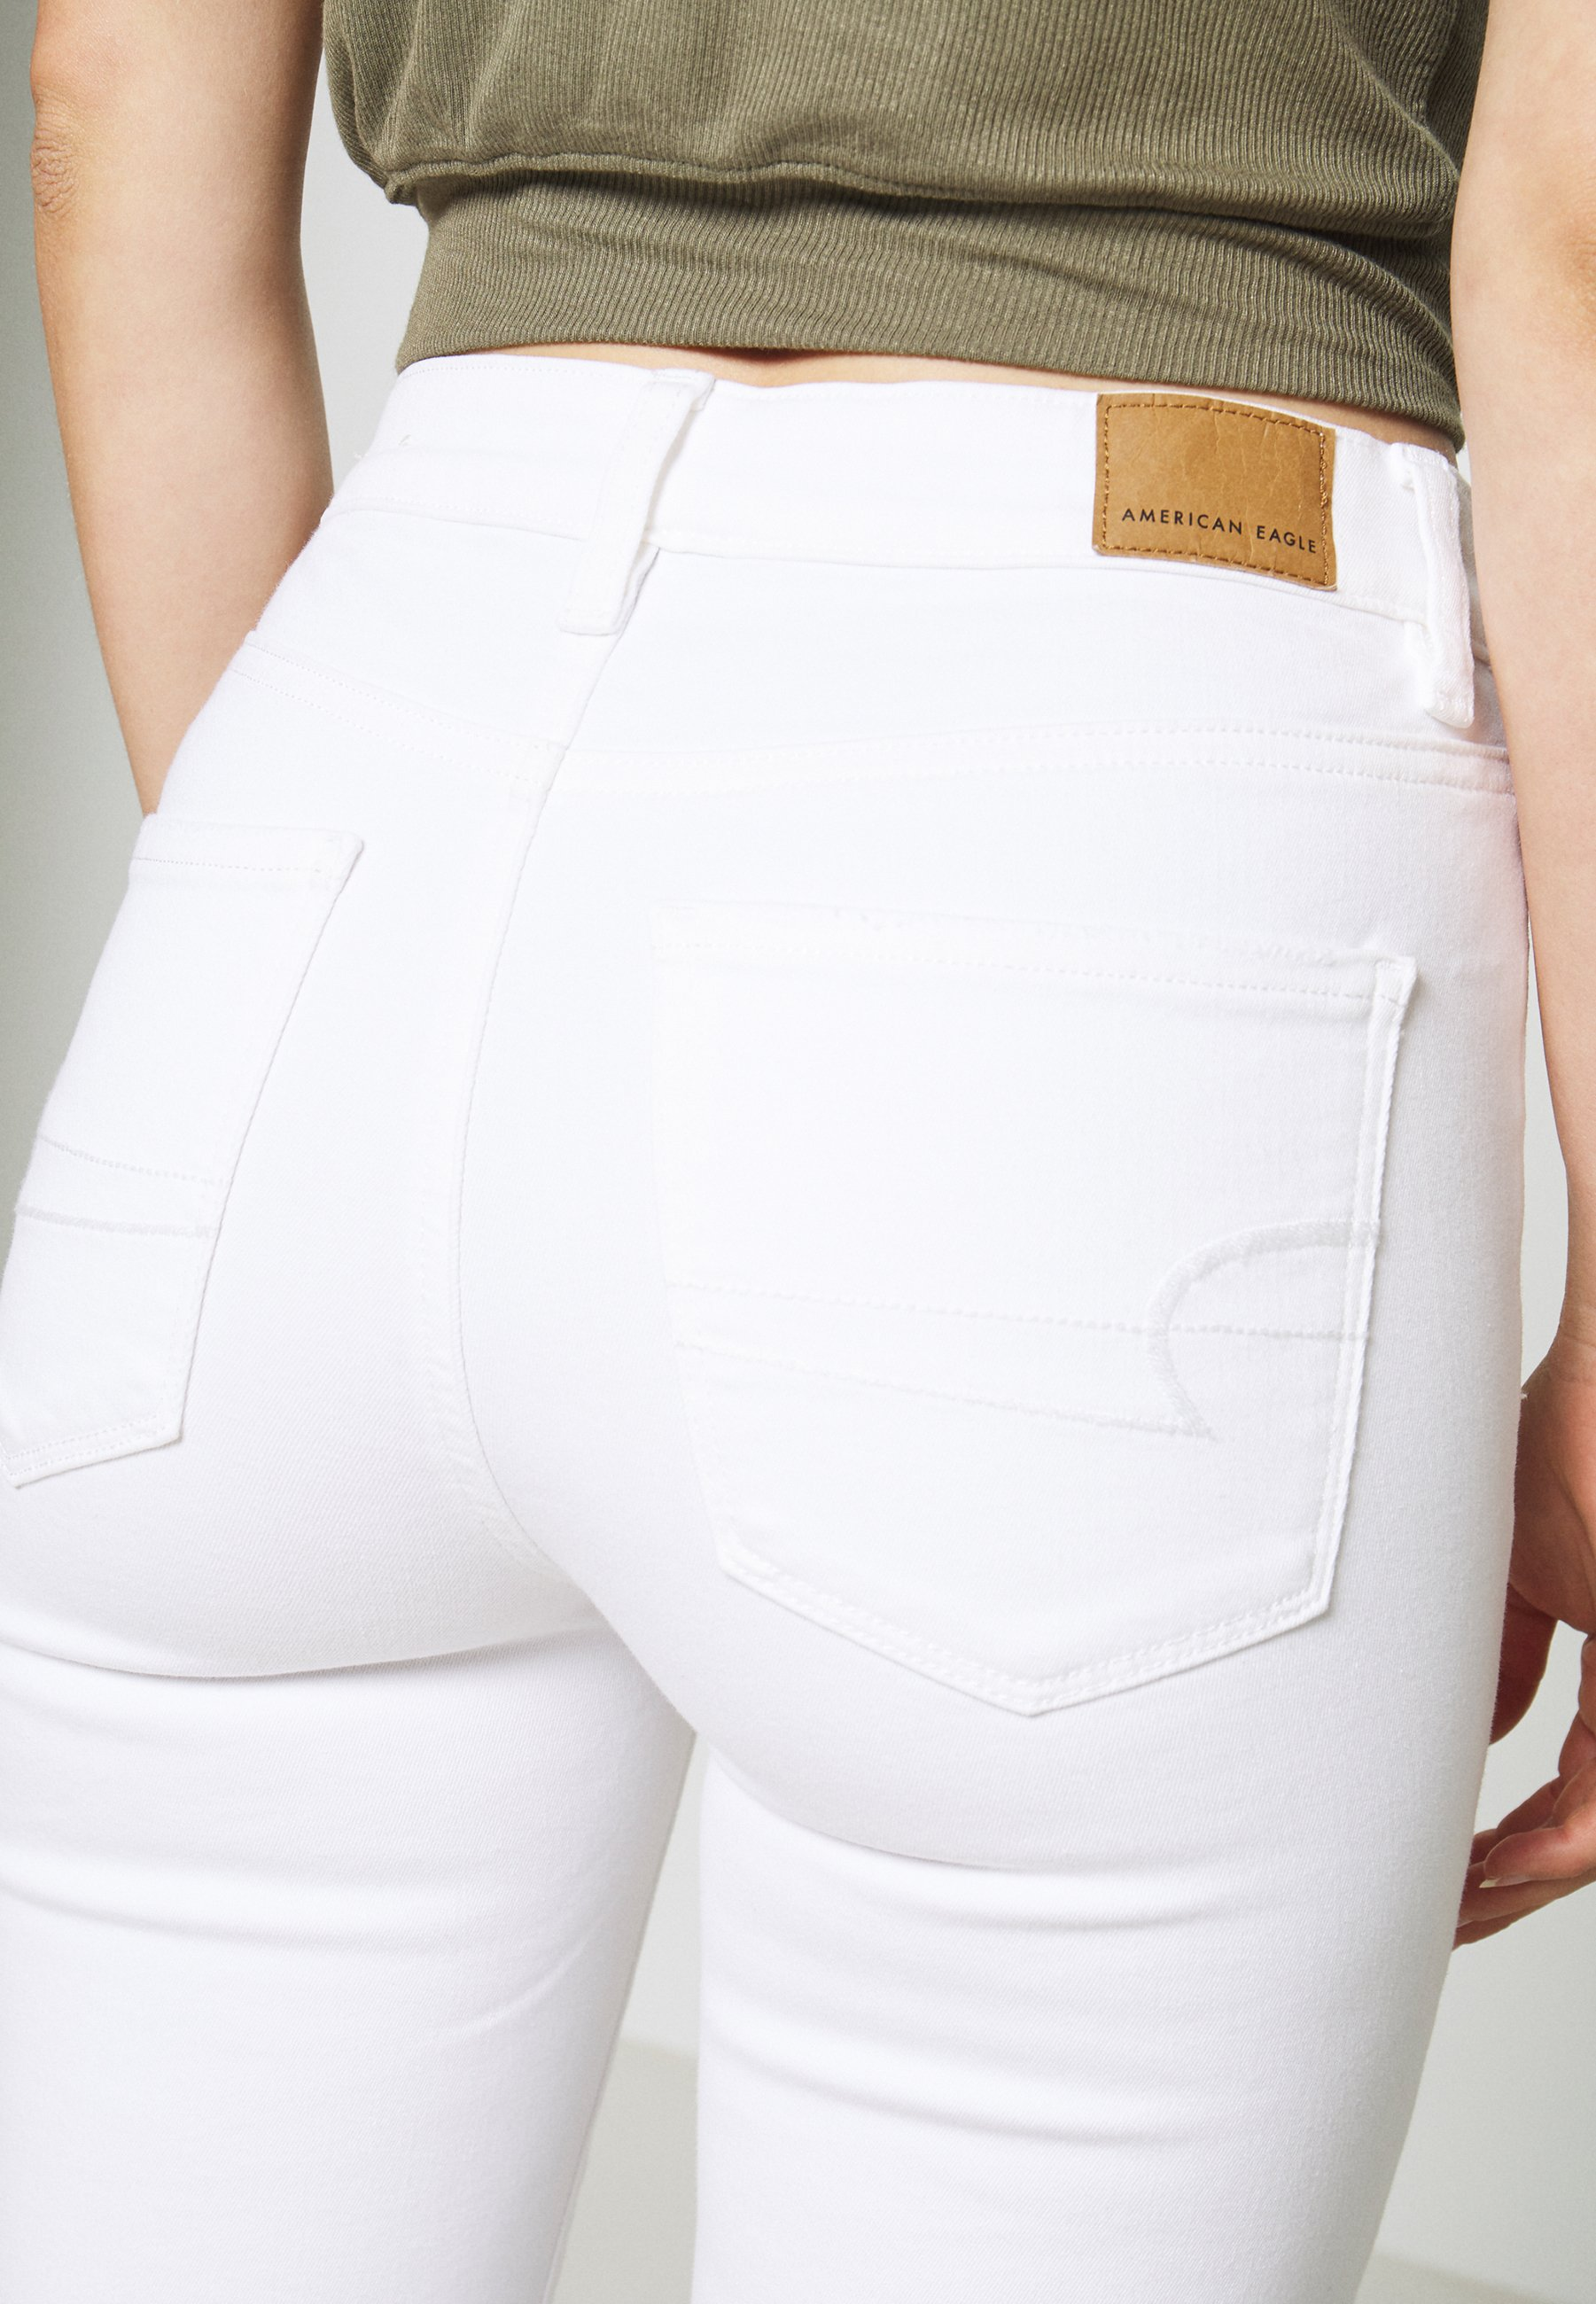 Nice Lowest Price Women's Clothing American Eagle SUPER RISE JEGGING CROP Jeggings bright white hA4Dts1fB Gp1pCDARj